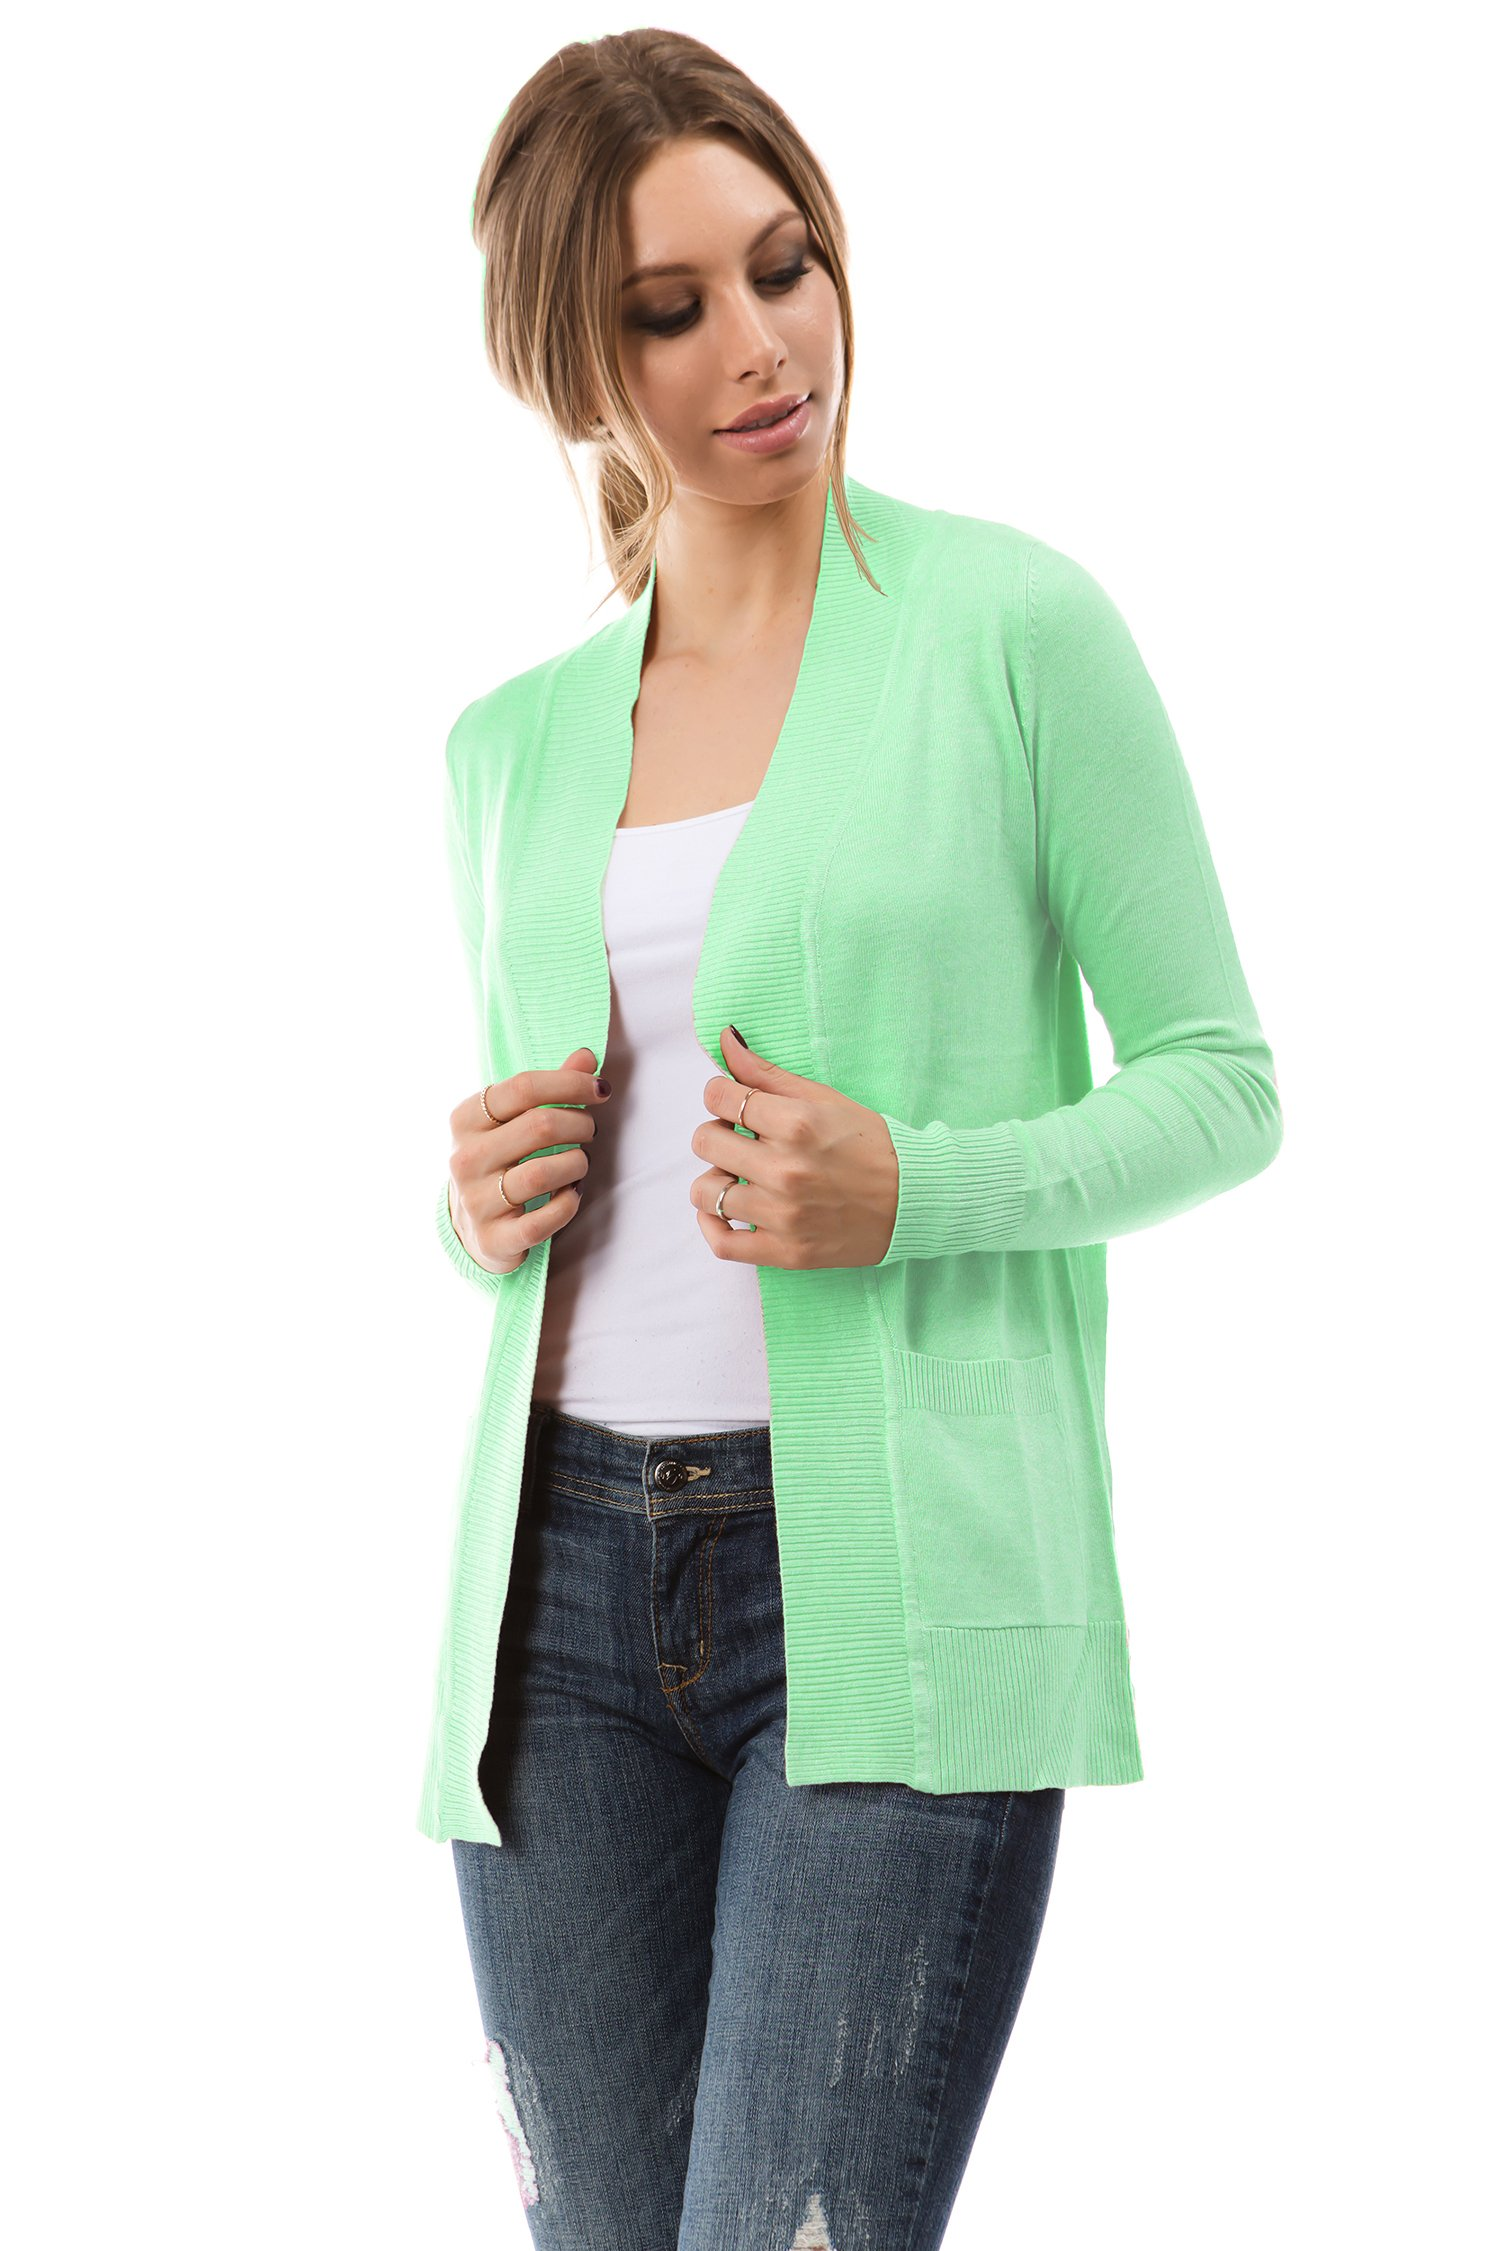 CIELO Open Front Solid Color Long Sleeve Sweater Cardigan Mint S